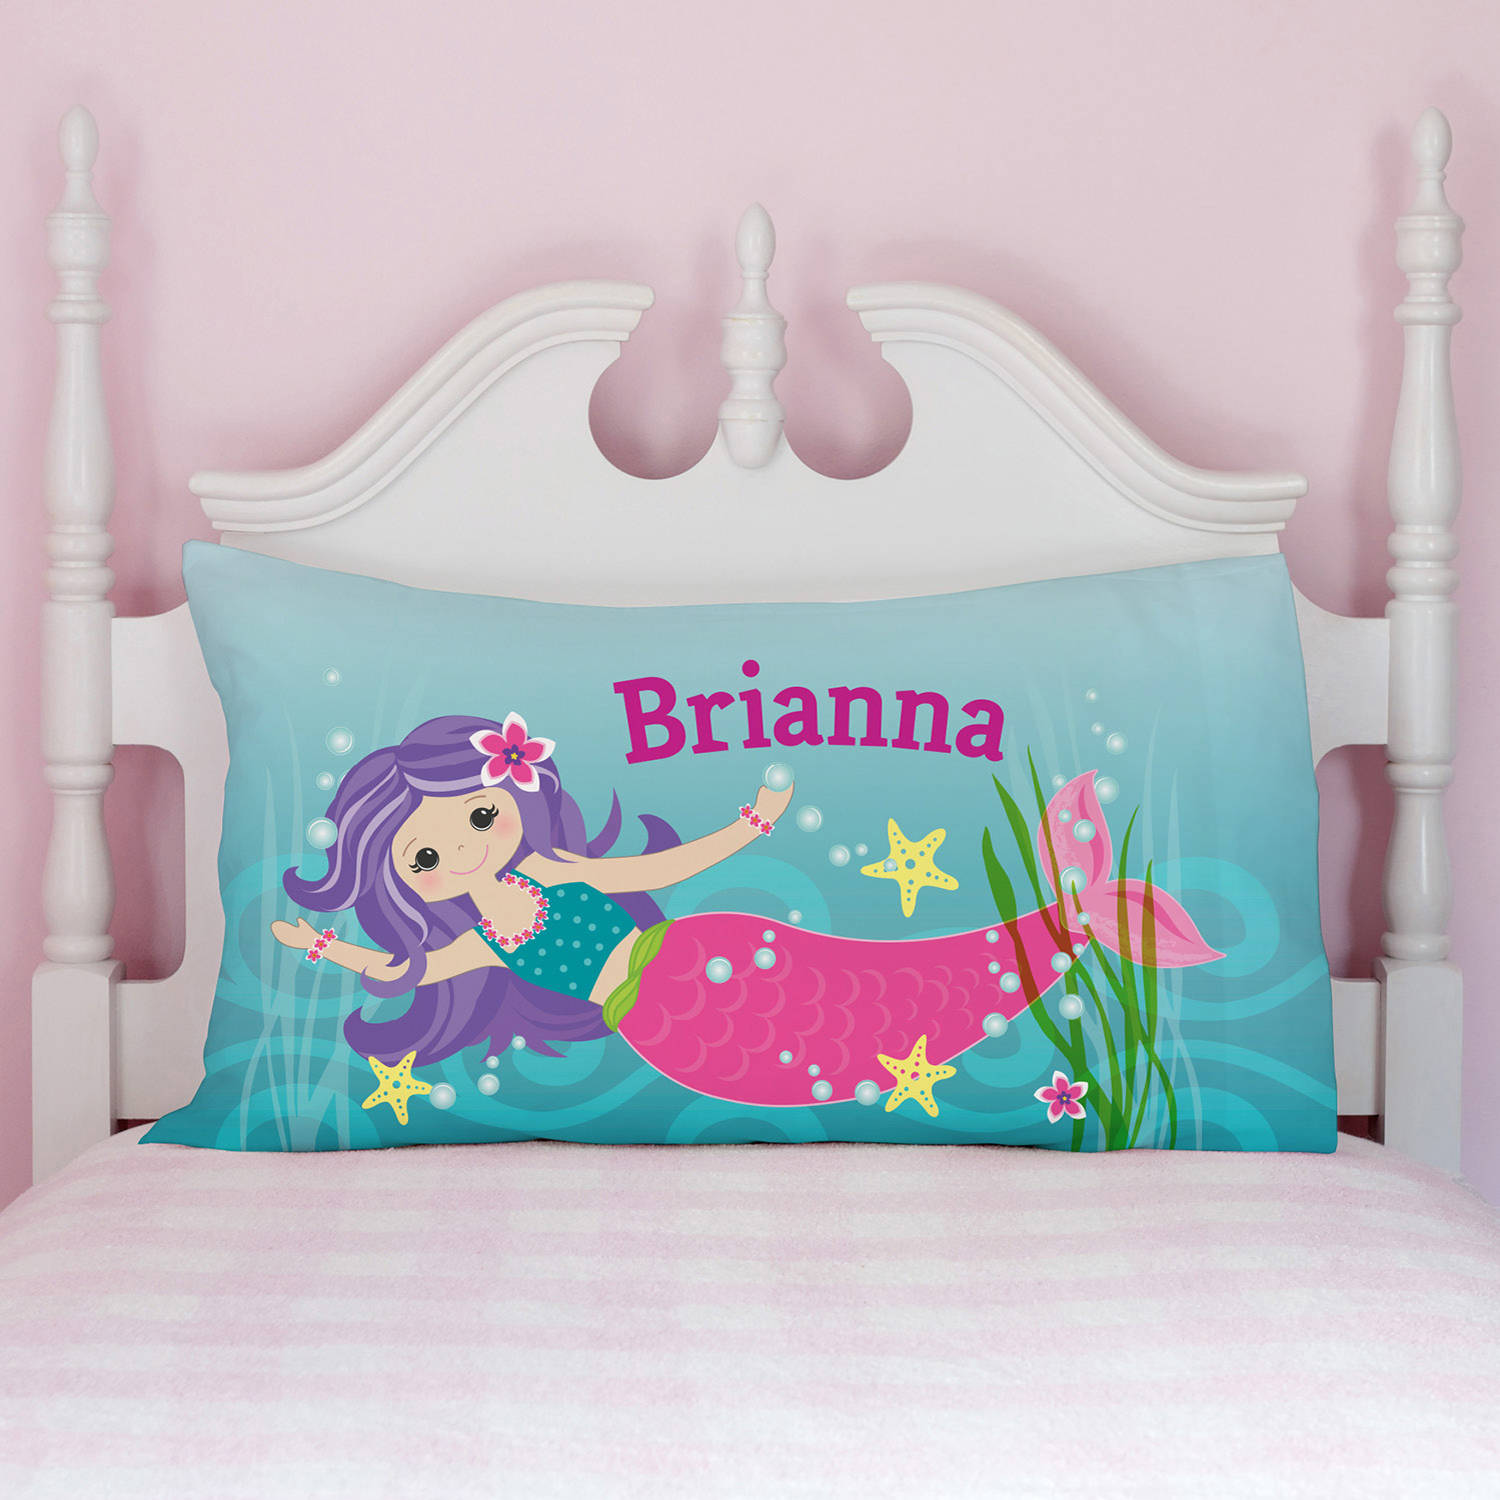 Personalized Pillowcases for Girls Choose from Mermaid, Ballet Bear or Flowers